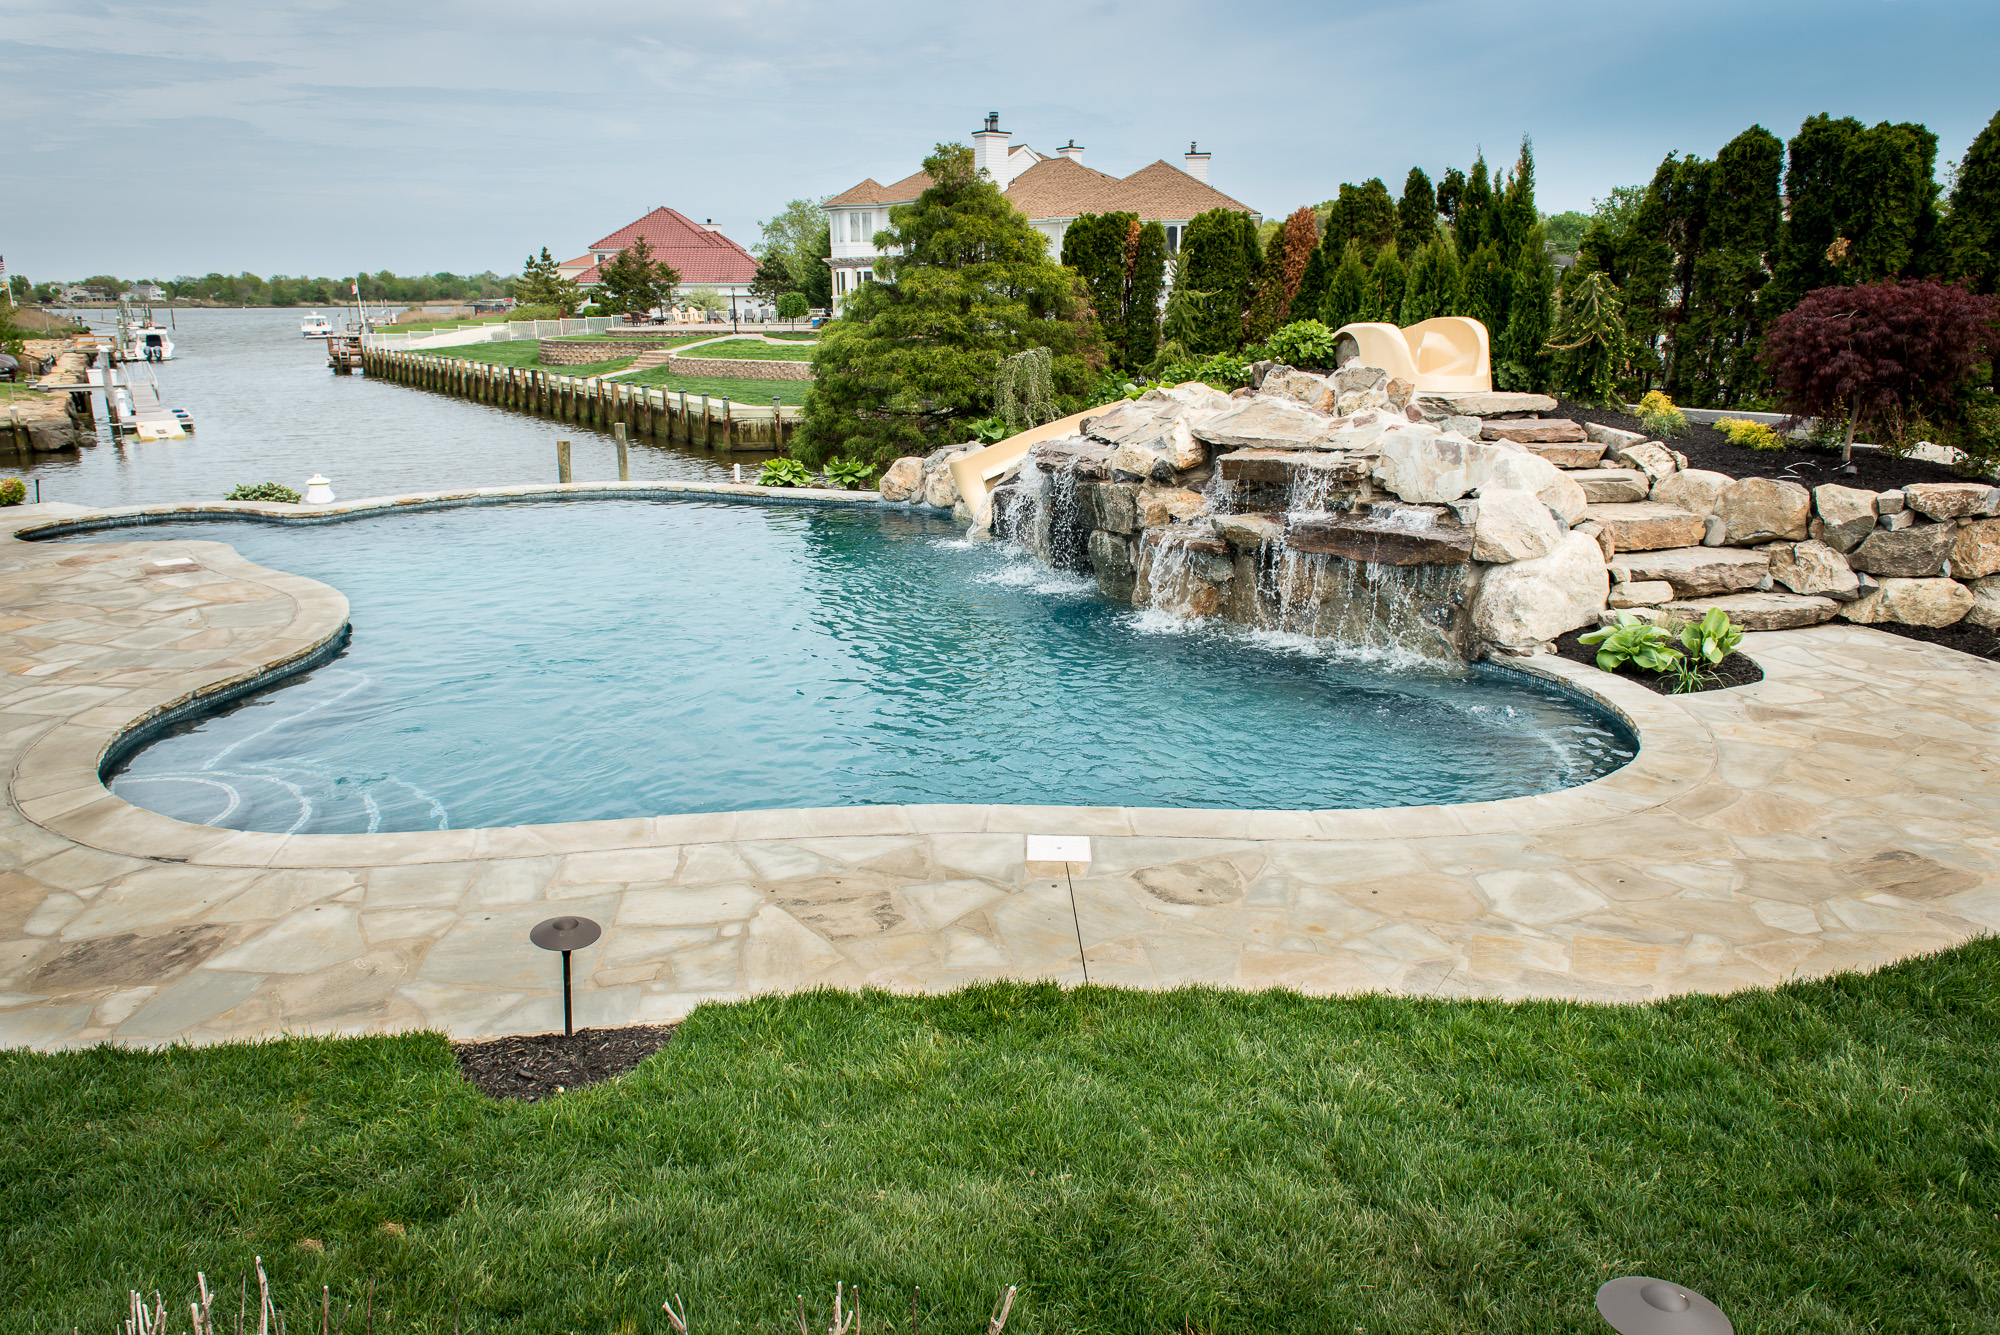 Custom inground pool design and install oceanport nj for Pool design inc bordentown nj